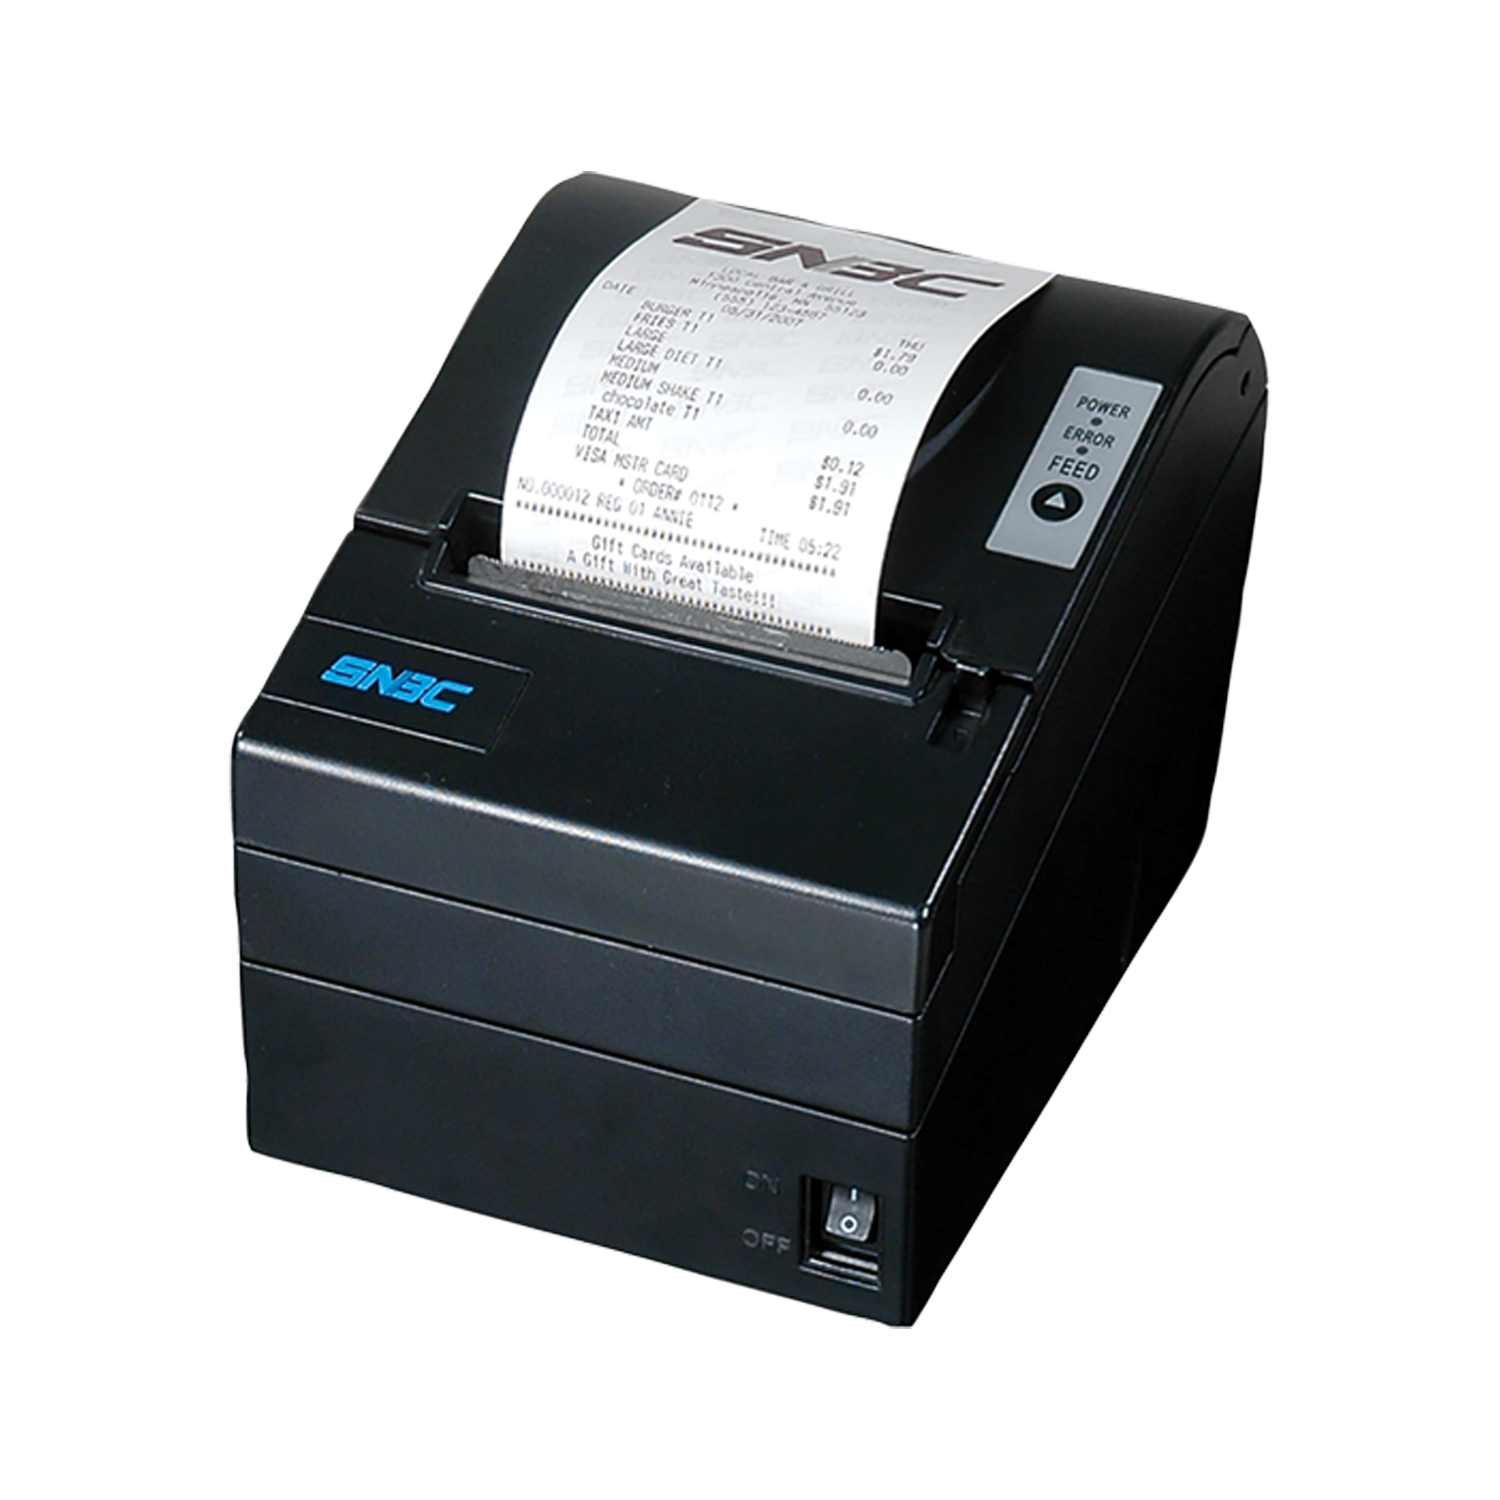 Meridian-POS-Equipment_0001_Layer-5.png